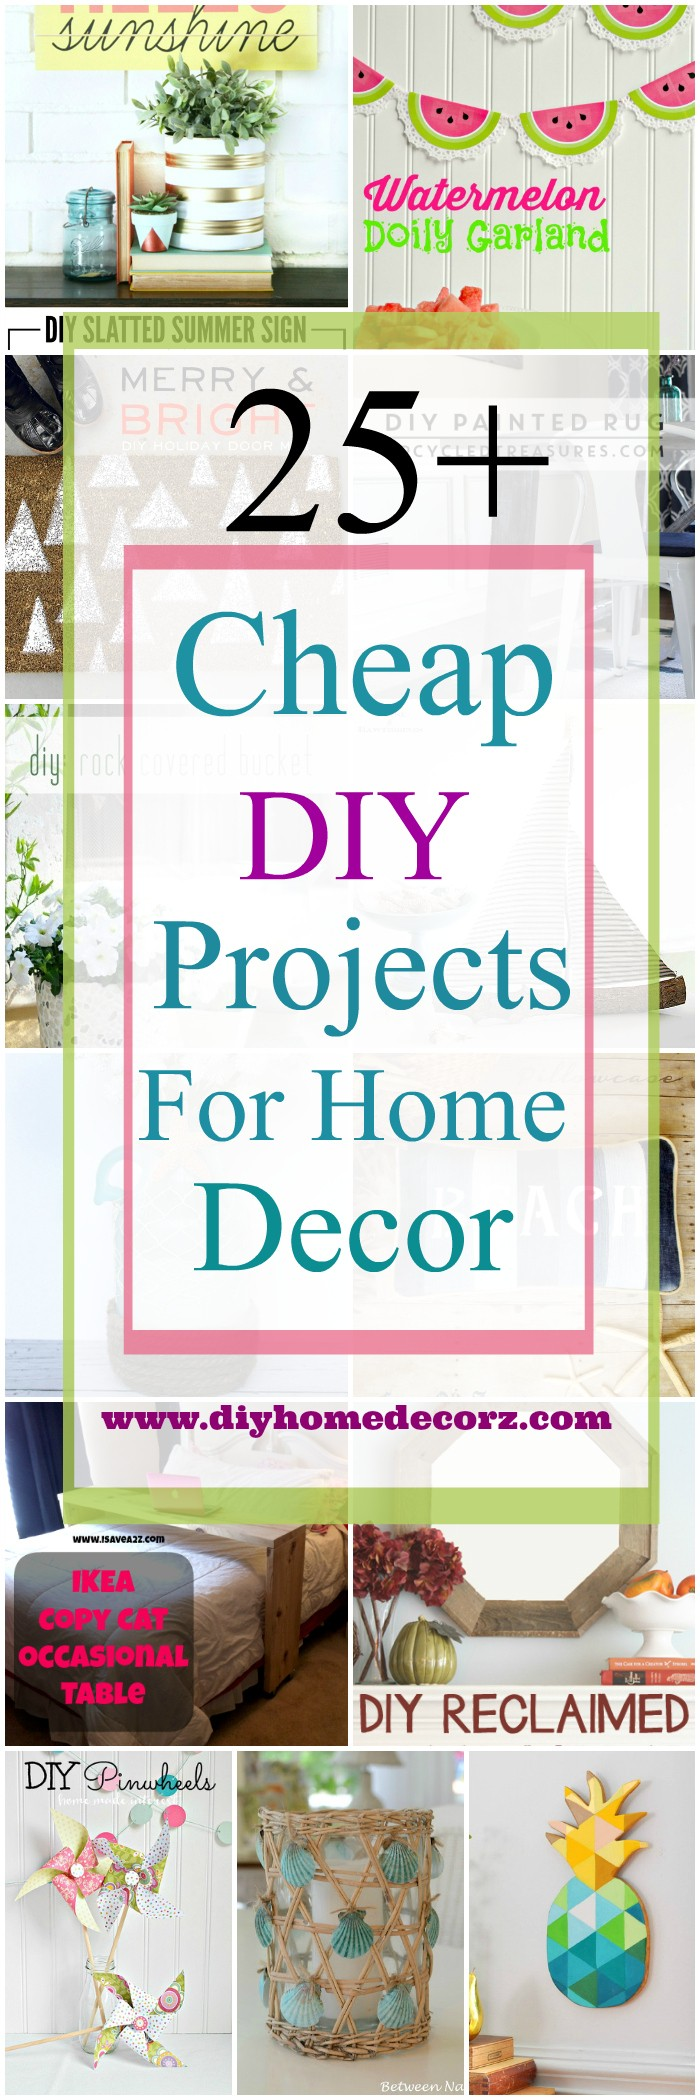 25 cheap diy projects for home decor diy home decor. Black Bedroom Furniture Sets. Home Design Ideas